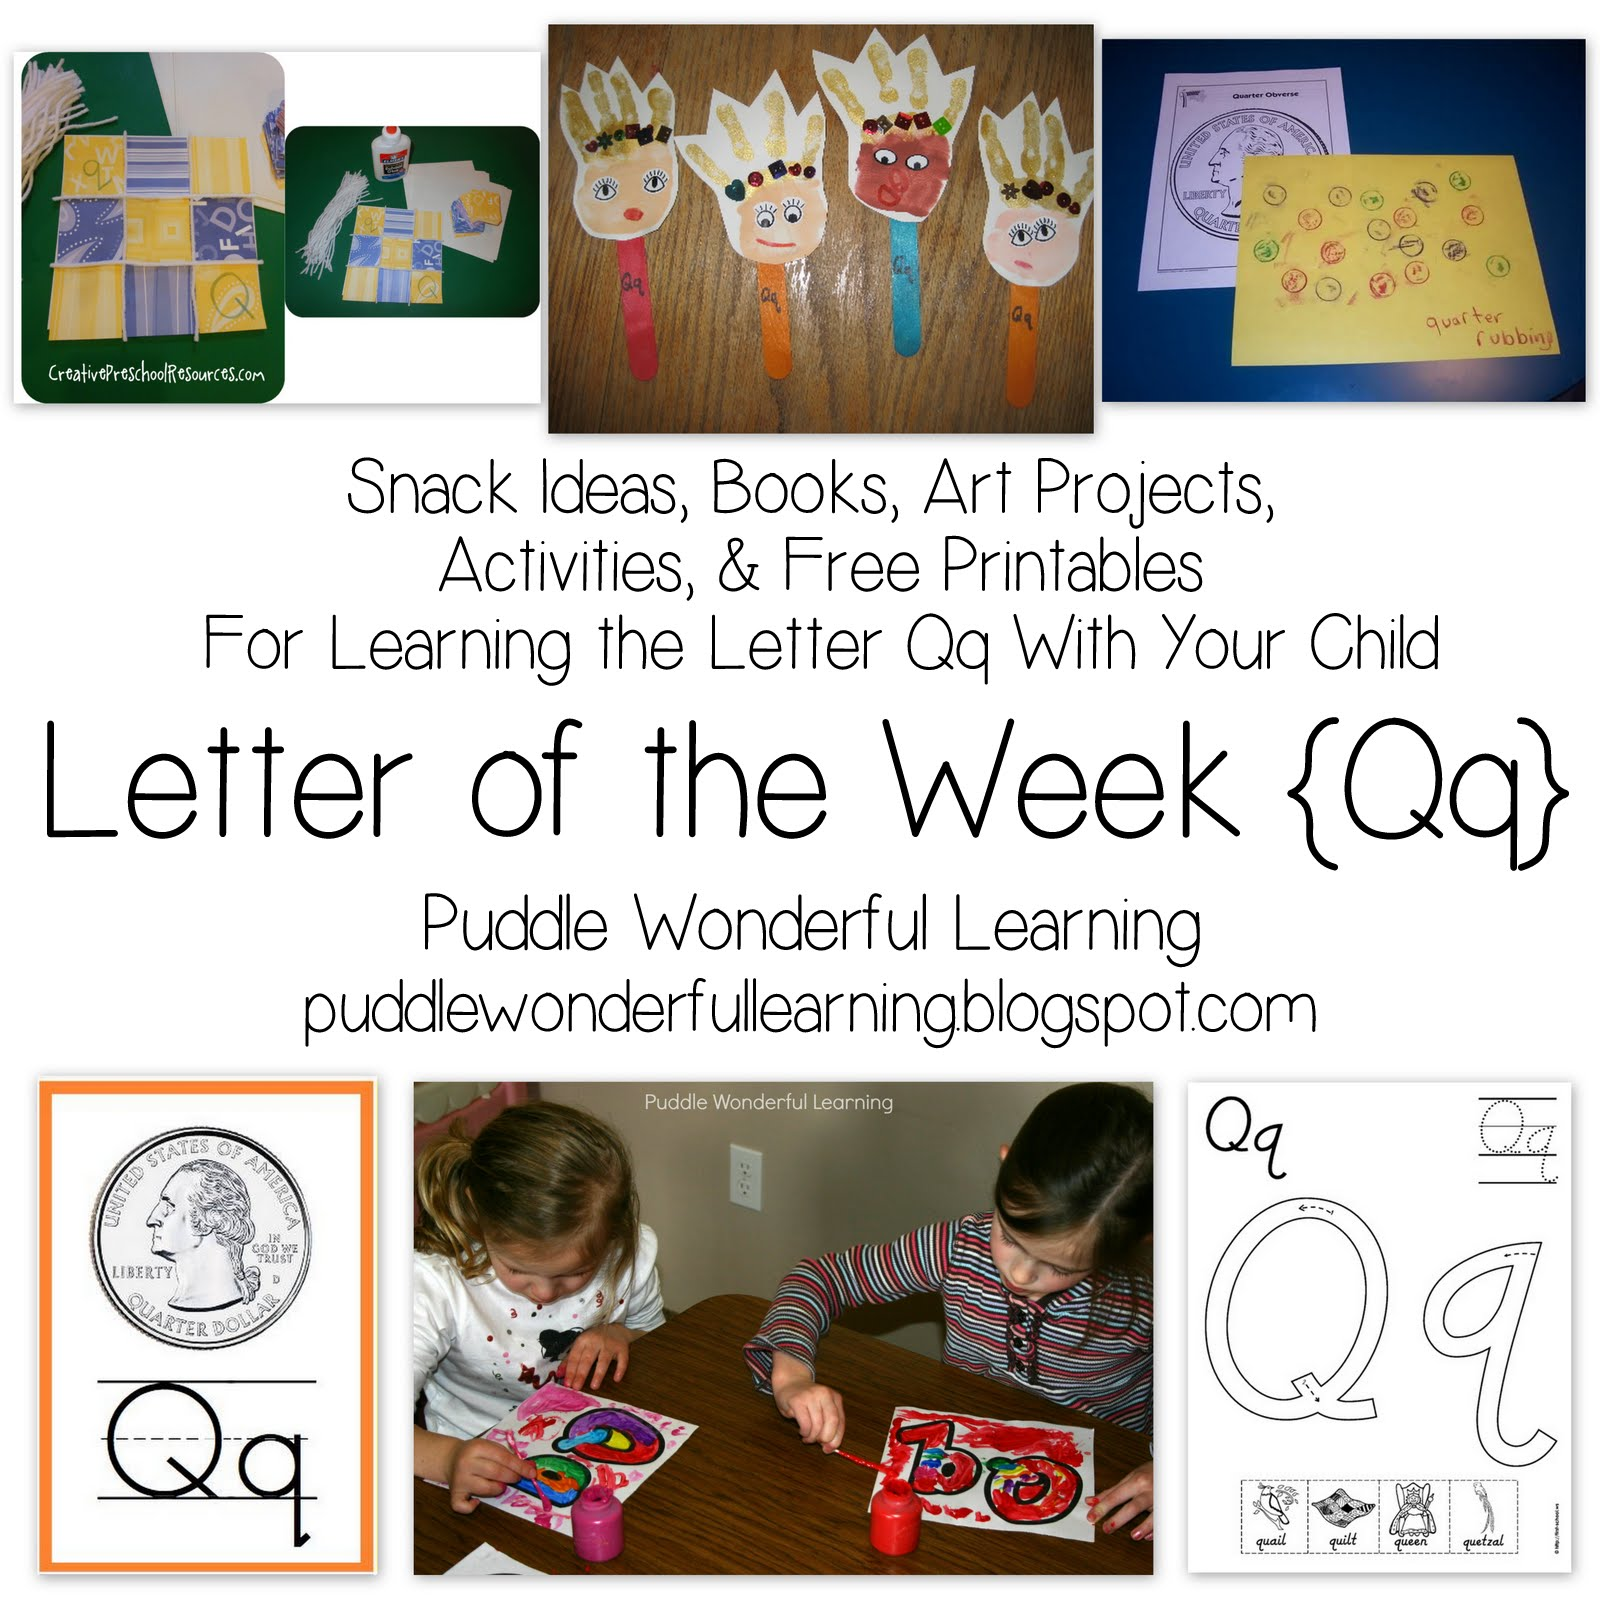 Puddle Wonderful Learning Preschool Activities Letter Of The Week Qq